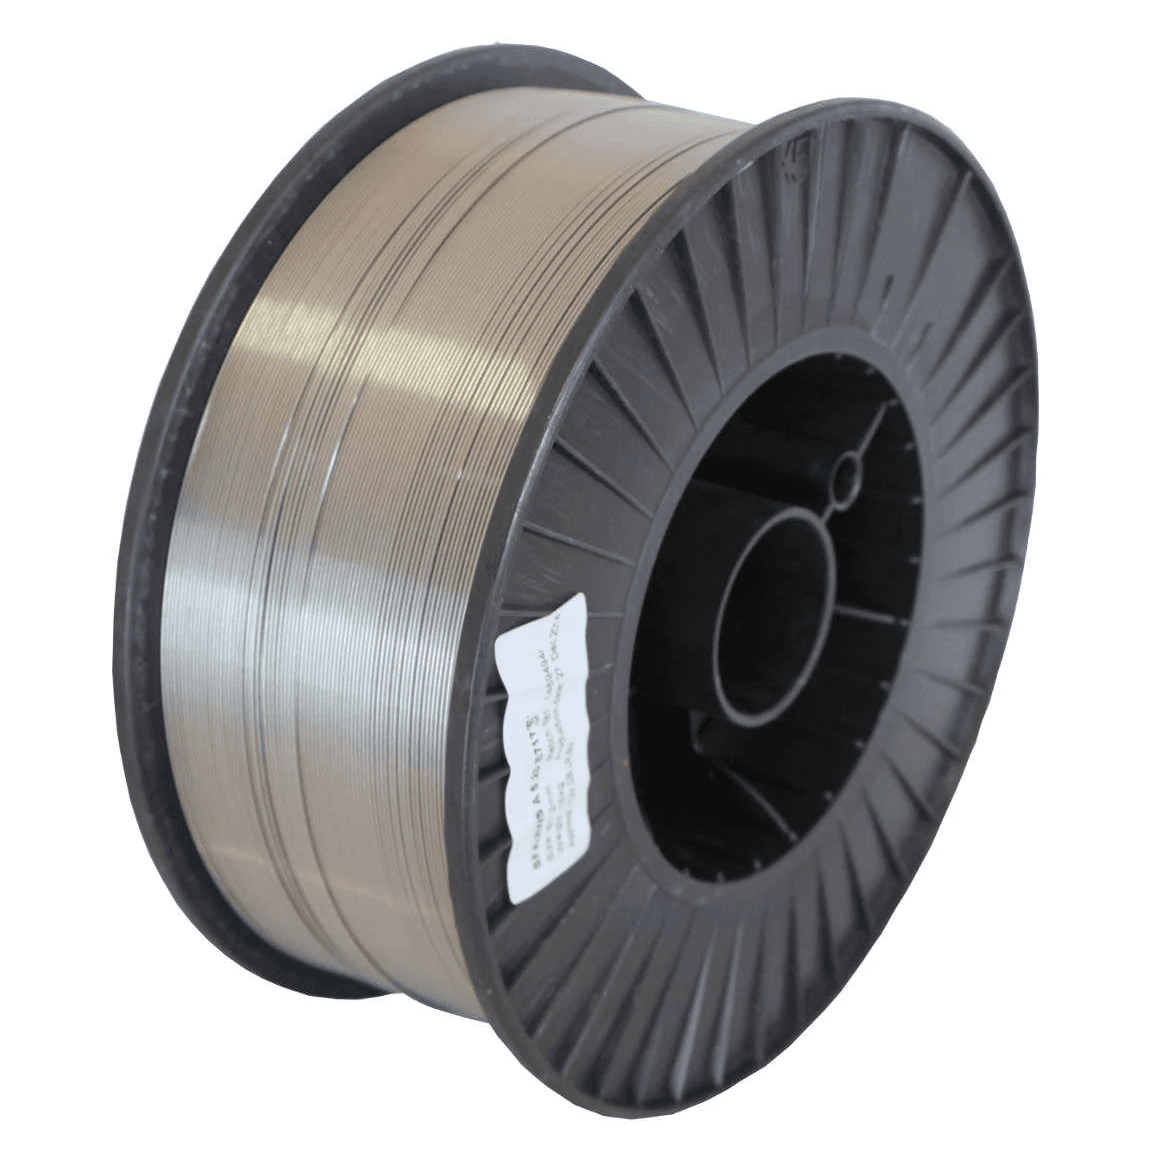 YC-YD258(Q) Gas Shielded Hardfacing Flux Cored Wire Featured Image